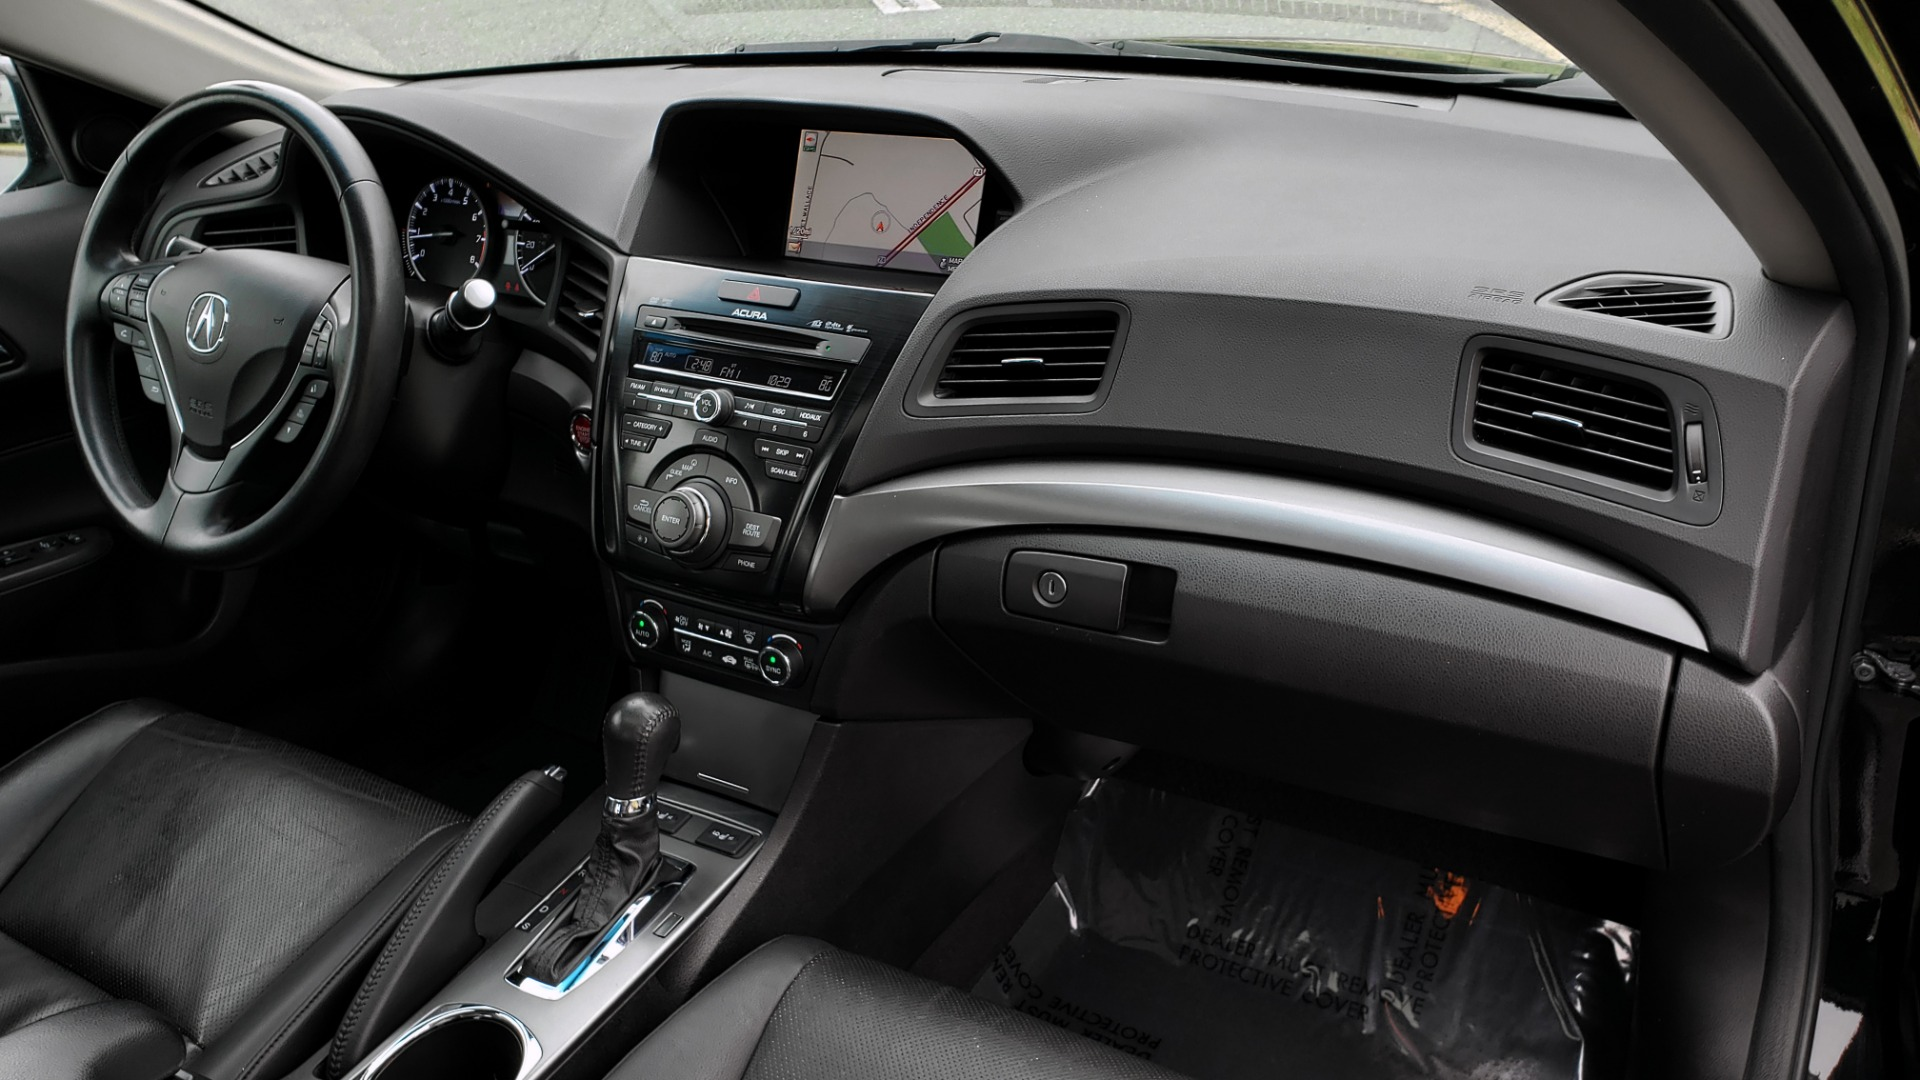 Used 2013 Acura ILX TECH PKG / SUNROOF / NAV / DUAL-ZONE A/C / REARVIEW for sale Sold at Formula Imports in Charlotte NC 28227 61